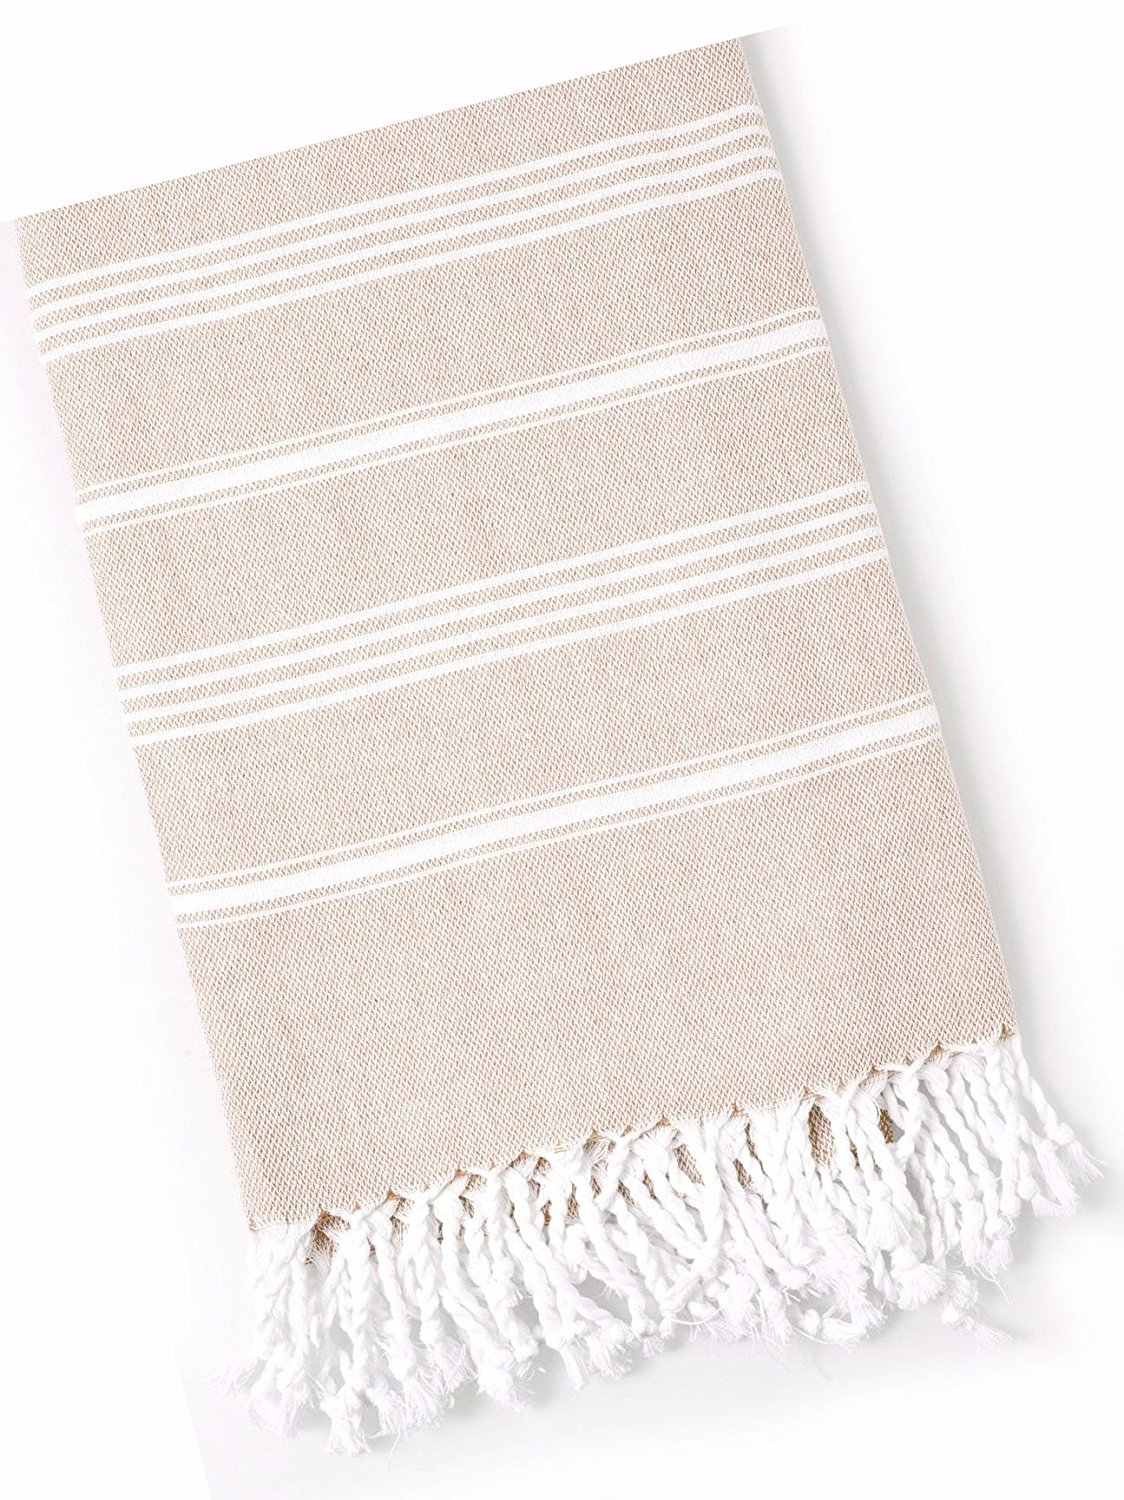 "Custom & Luxurious {30"" x 60"" Inch} 1 Single Large & Thin Soft Summer Beach & Bath Towels Made of Quick-Dry Cotton w/ Tropical Latte Pastel Turkish Lounging Vacation Souvenir Style [Multicolor]"